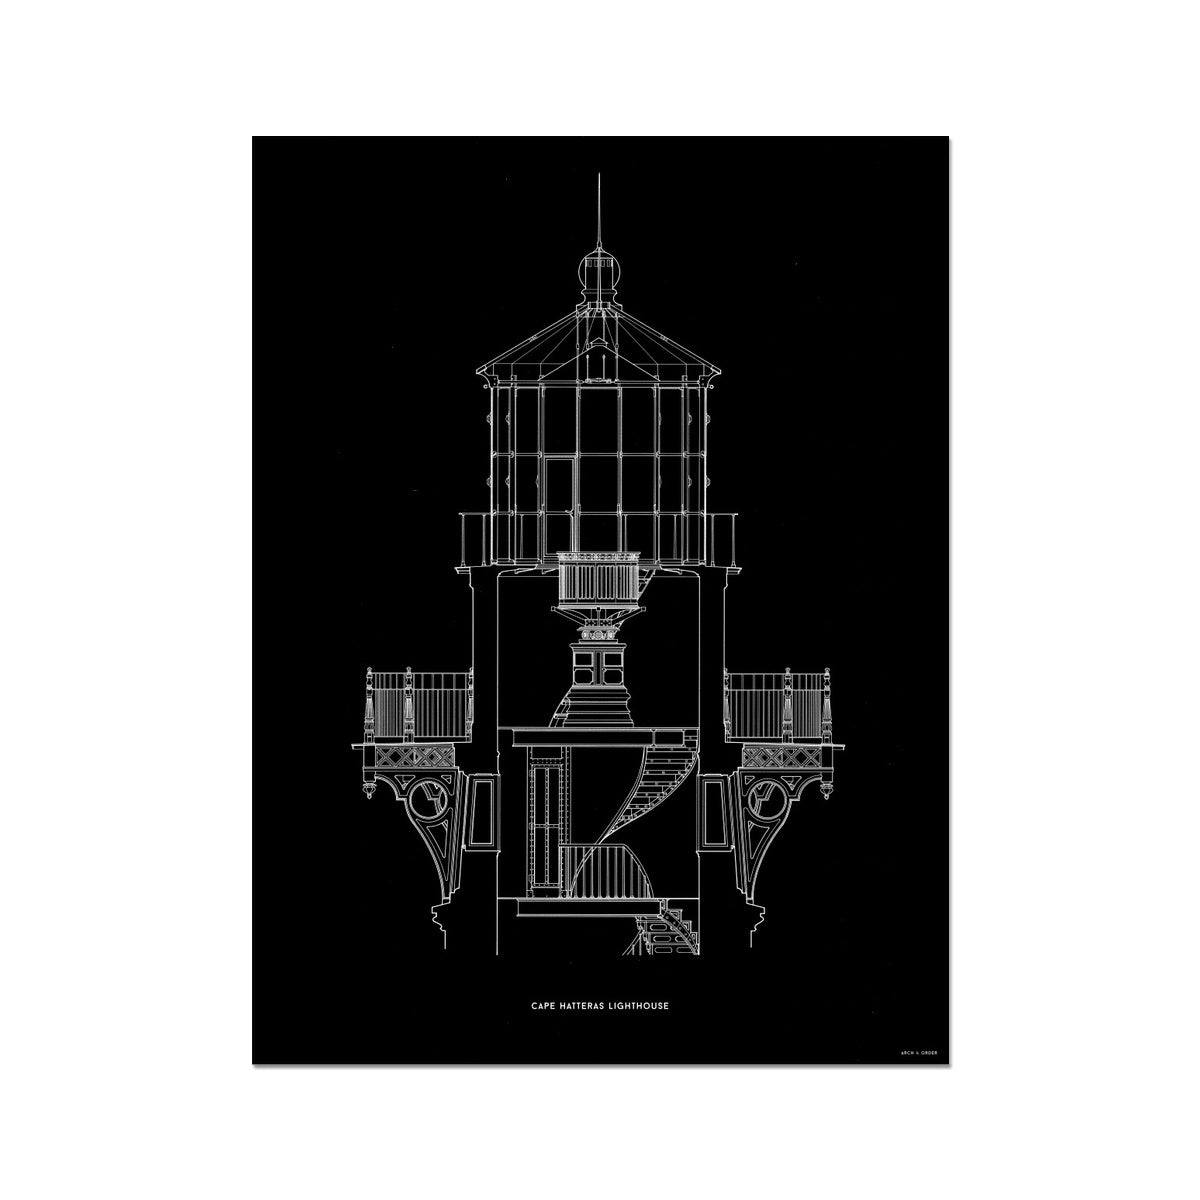 Cape Hatteras Lighthouse - Lantern Cross Section - Black -  Etching Paper Print